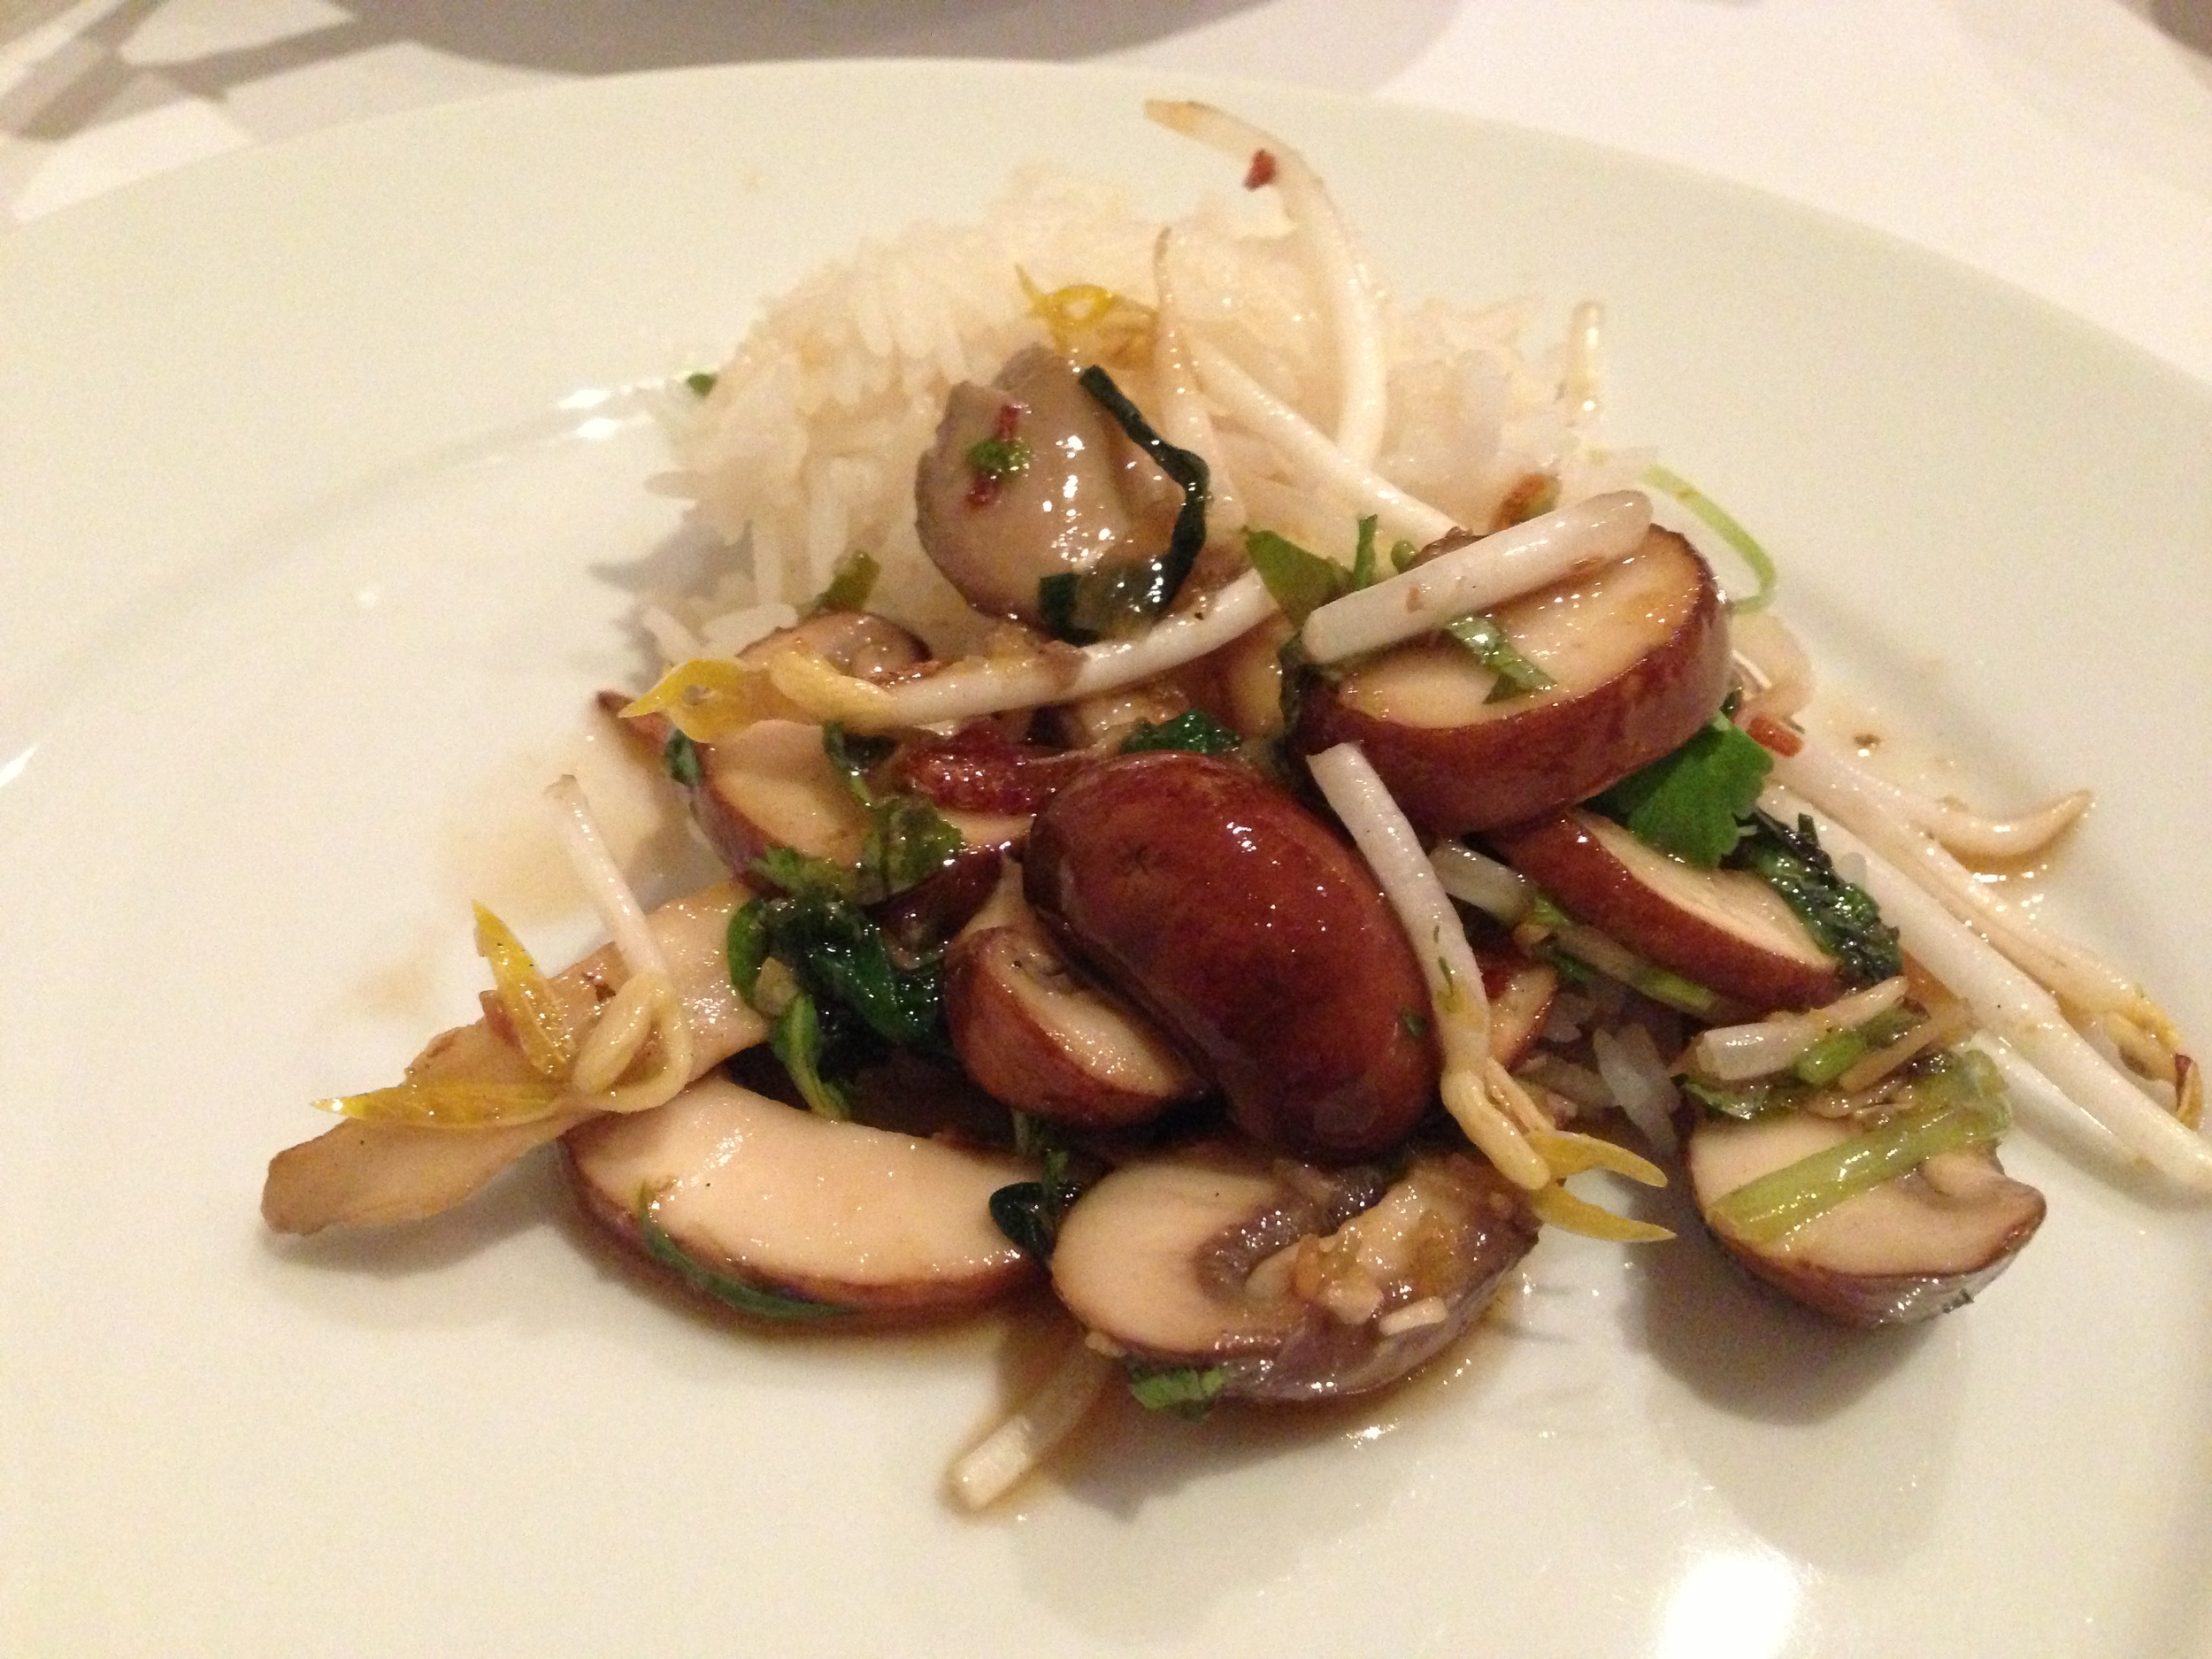 Warm mixed mushroom salad with galangal dressing